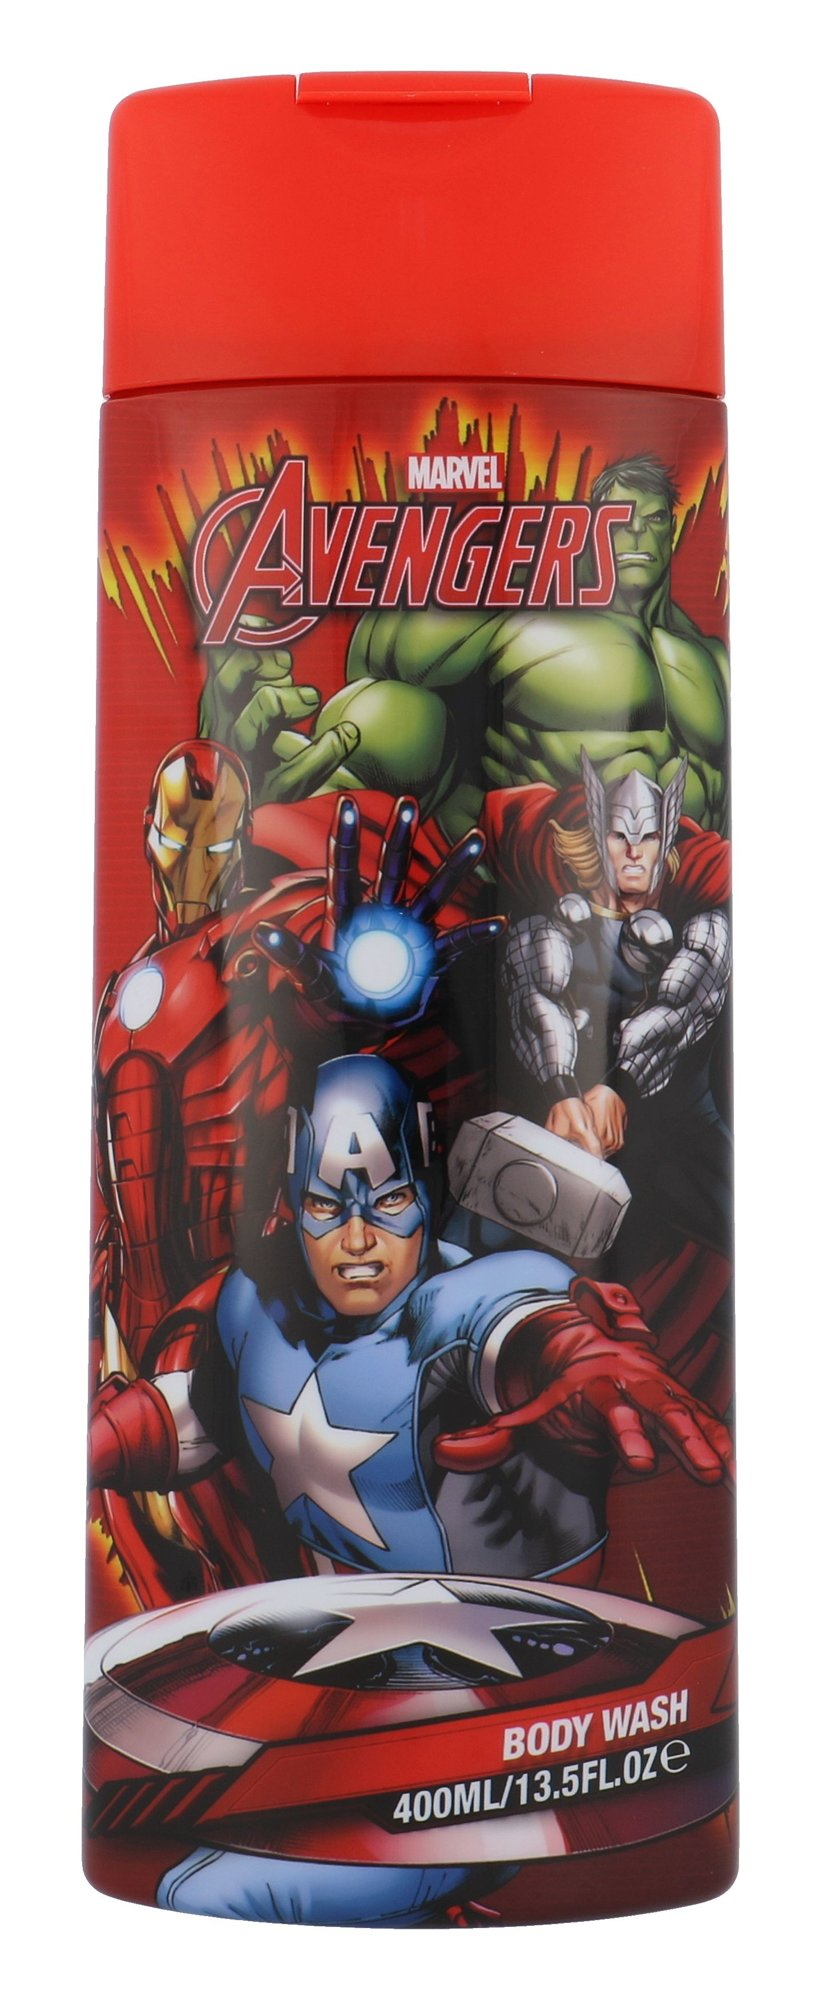 Marvel Avengers Shower gel 400ml